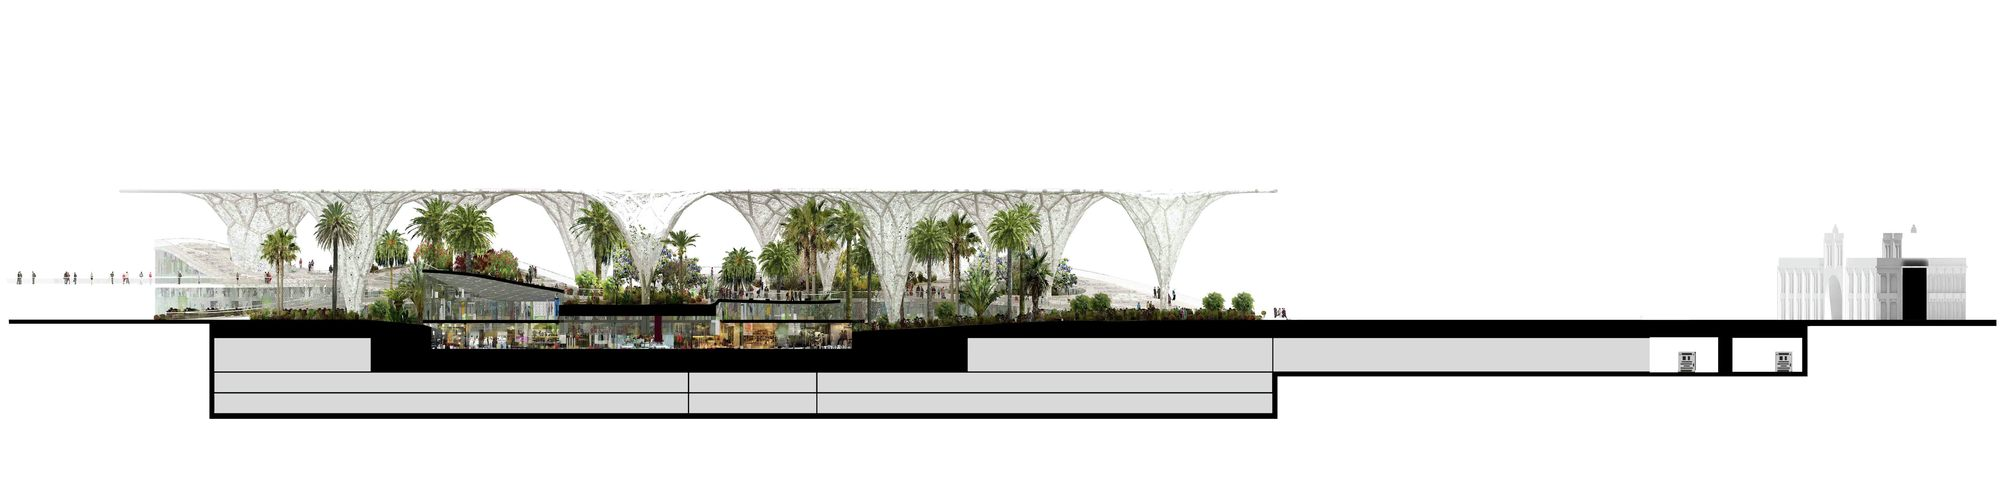 Gallery of Urban Oasis Proposal / Influx_Studio - 5